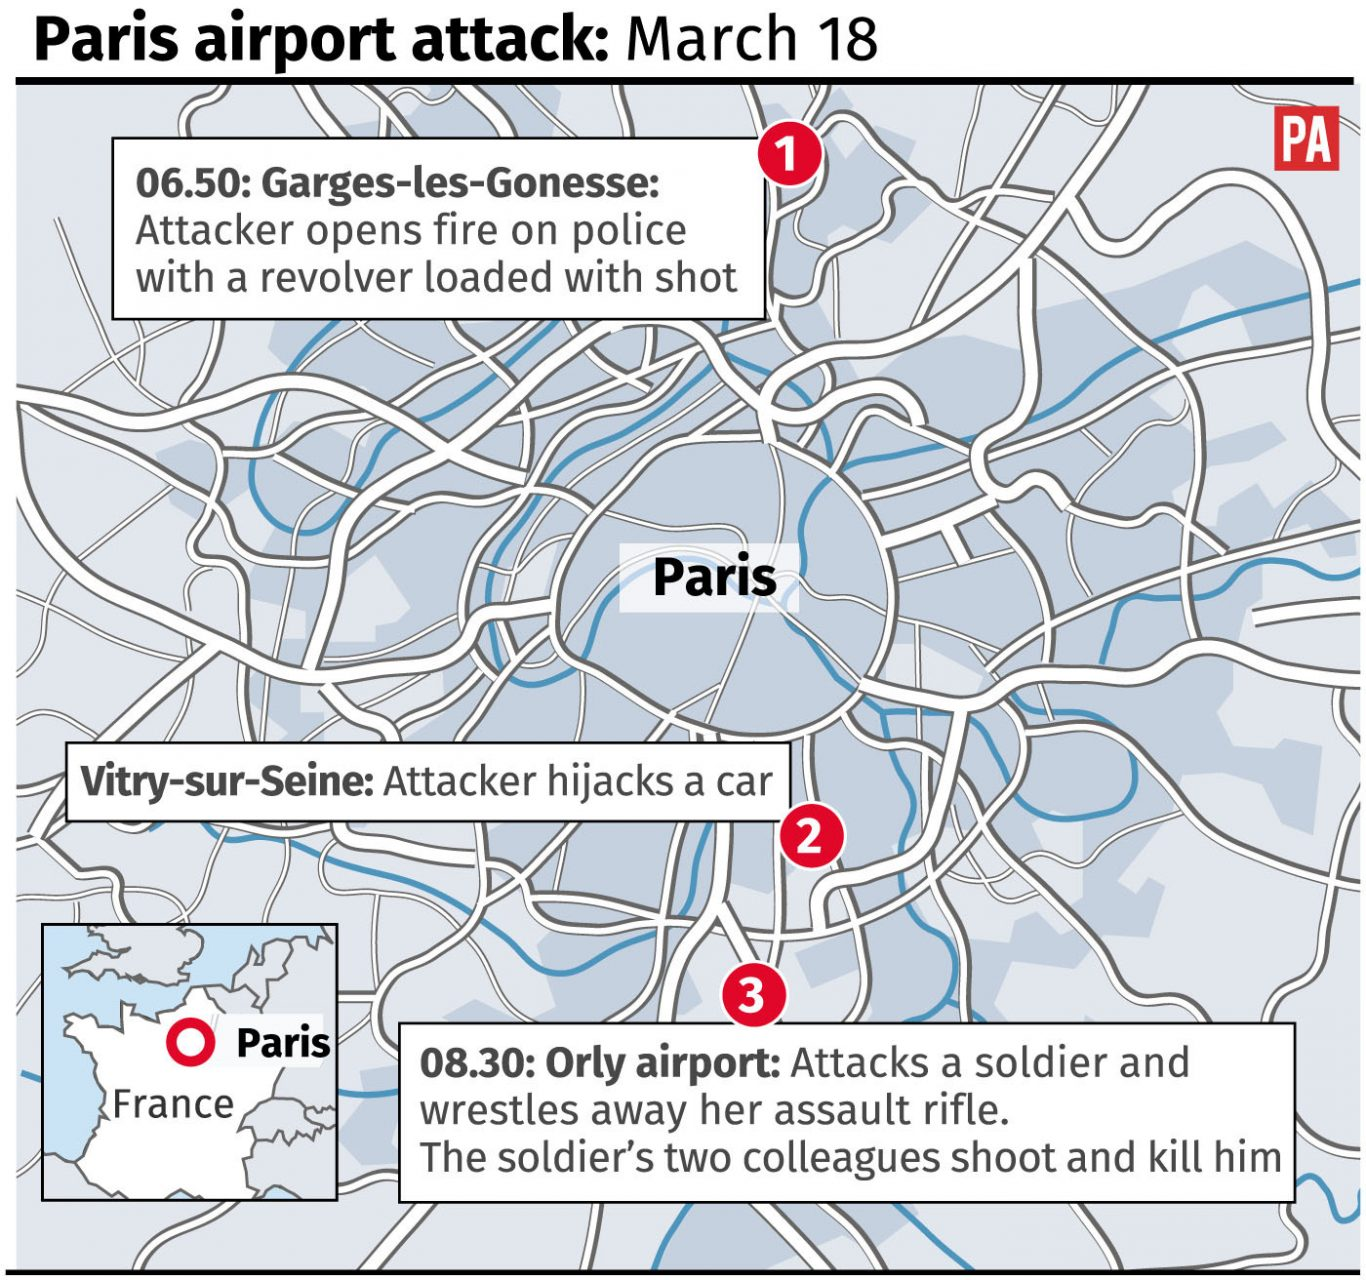 Orly airport attack locator.